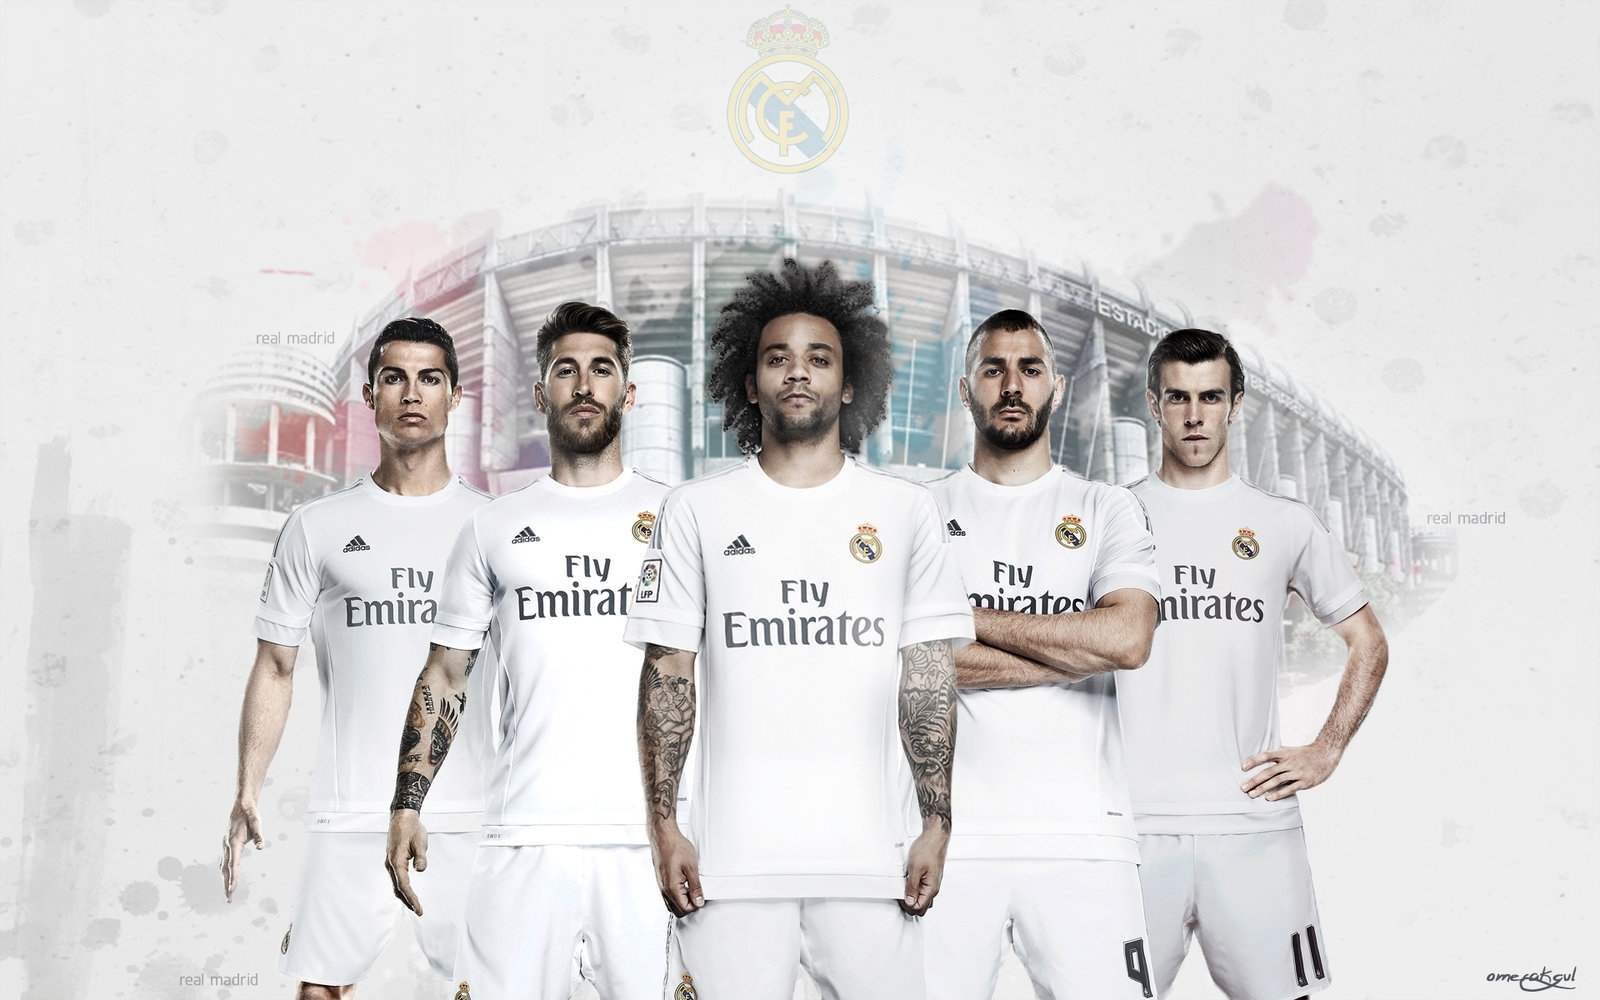 real madrid hd wallpapers 2016 find best latest real madrid hd